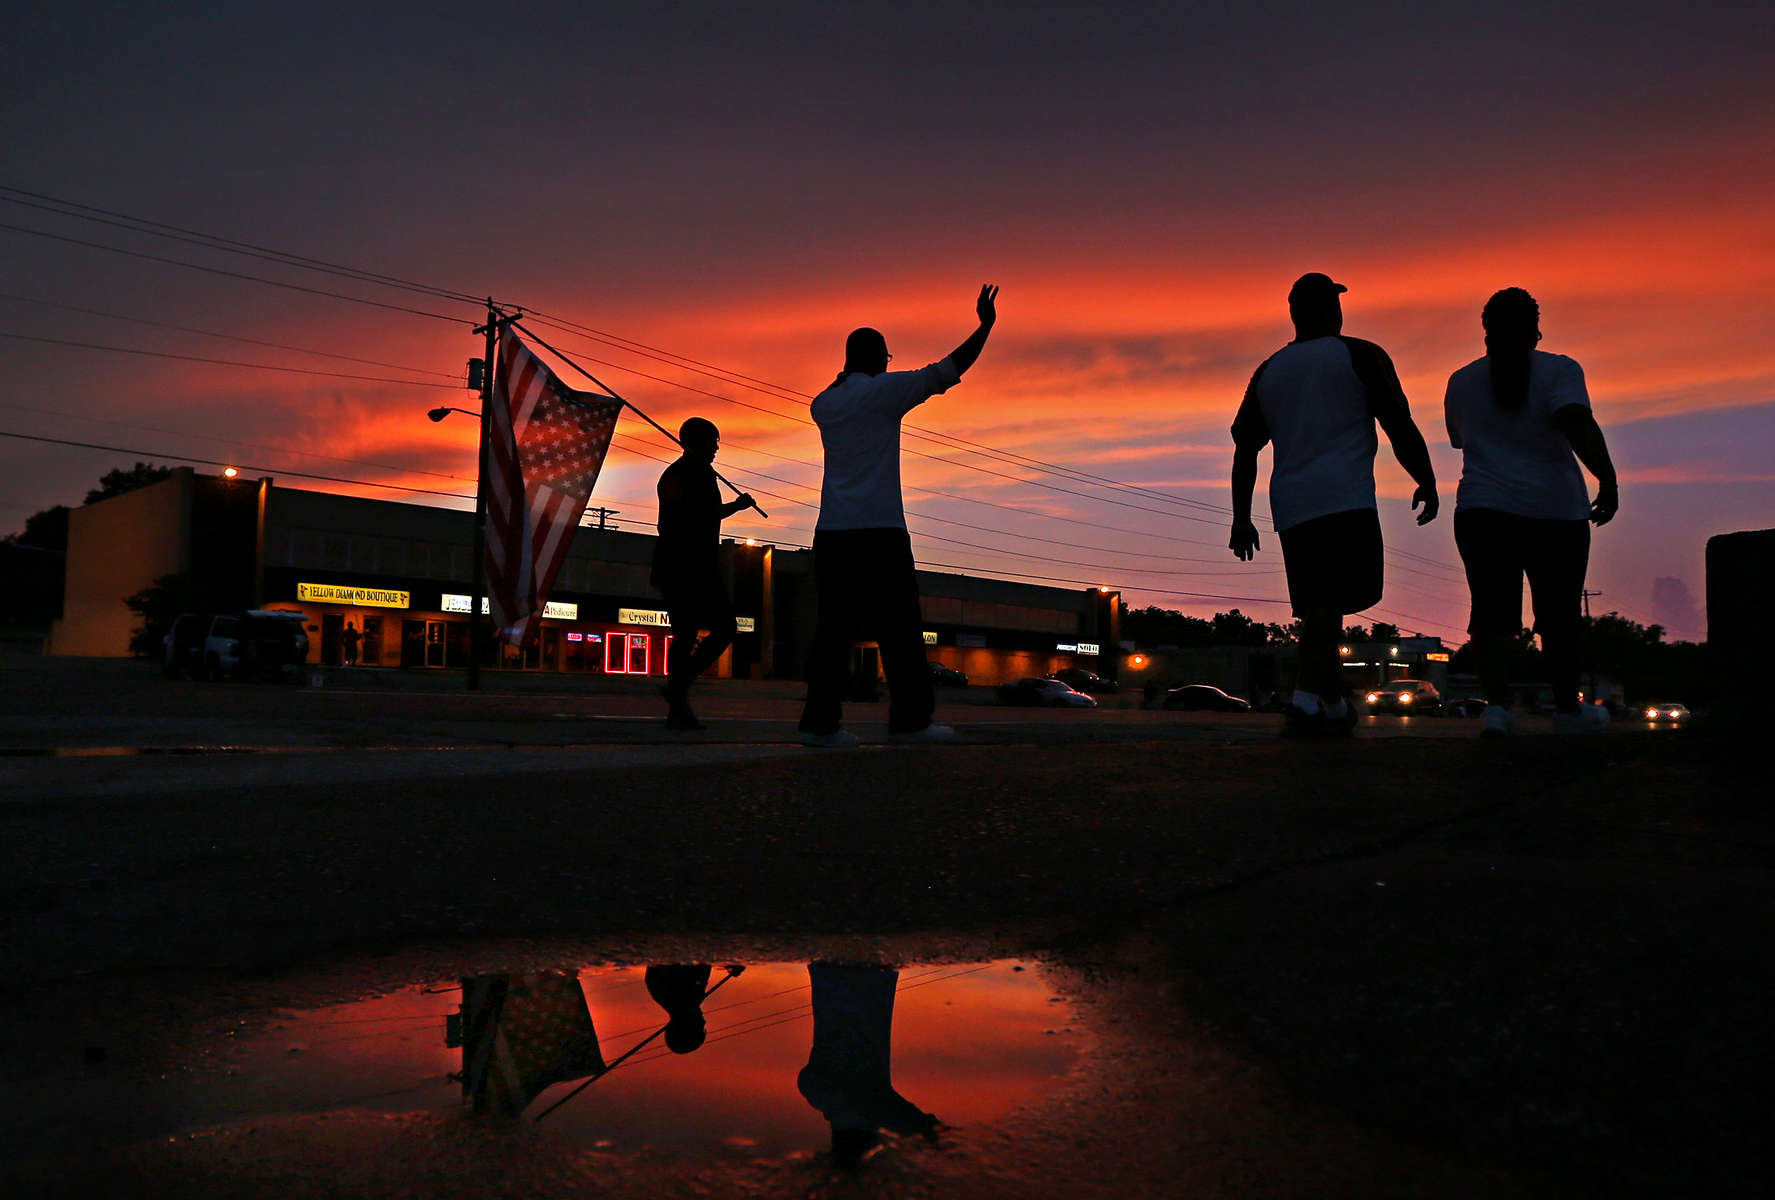 A small group protesters march along W. Florissant Avenue in Ferguson, Mo. on Tuesday, Aug. 26, 2014.  The large crowds and vocal protesters from earlier in the protests have mostly disappeared now.  Typically there has been less than a 100 people along W. Florissant protesting during the evening hours.  Some nights there have only been a couple of dozen people.